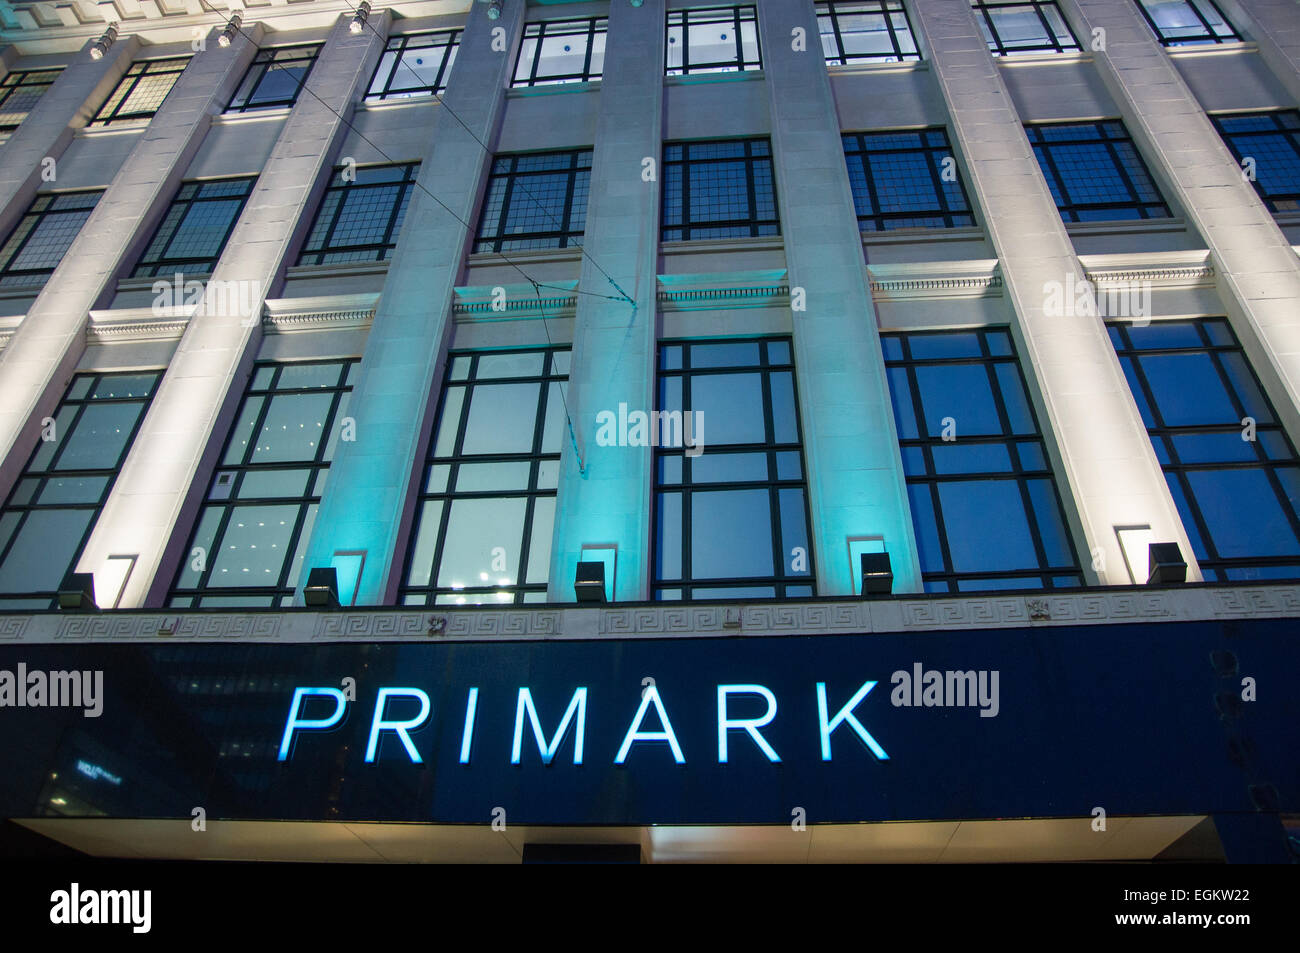 Primark, manchester at night - Stock Image